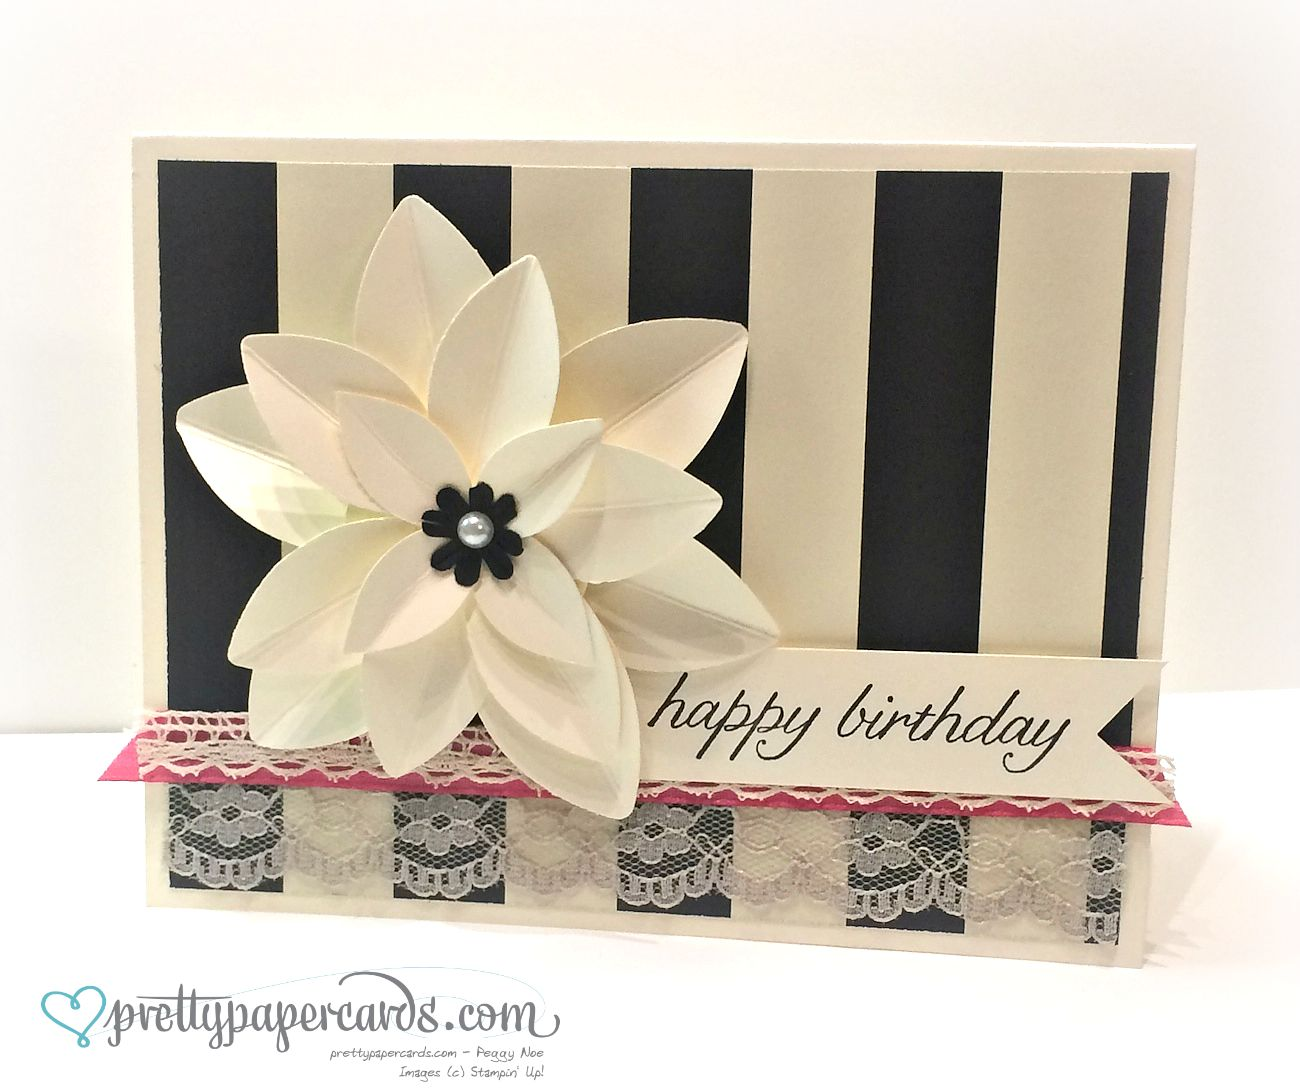 Flowers and lace for a birthday pretty paper cards do you have months on your calendar that have lots of birthdays i sure do so many of my friends have september and october birthdays izmirmasajfo